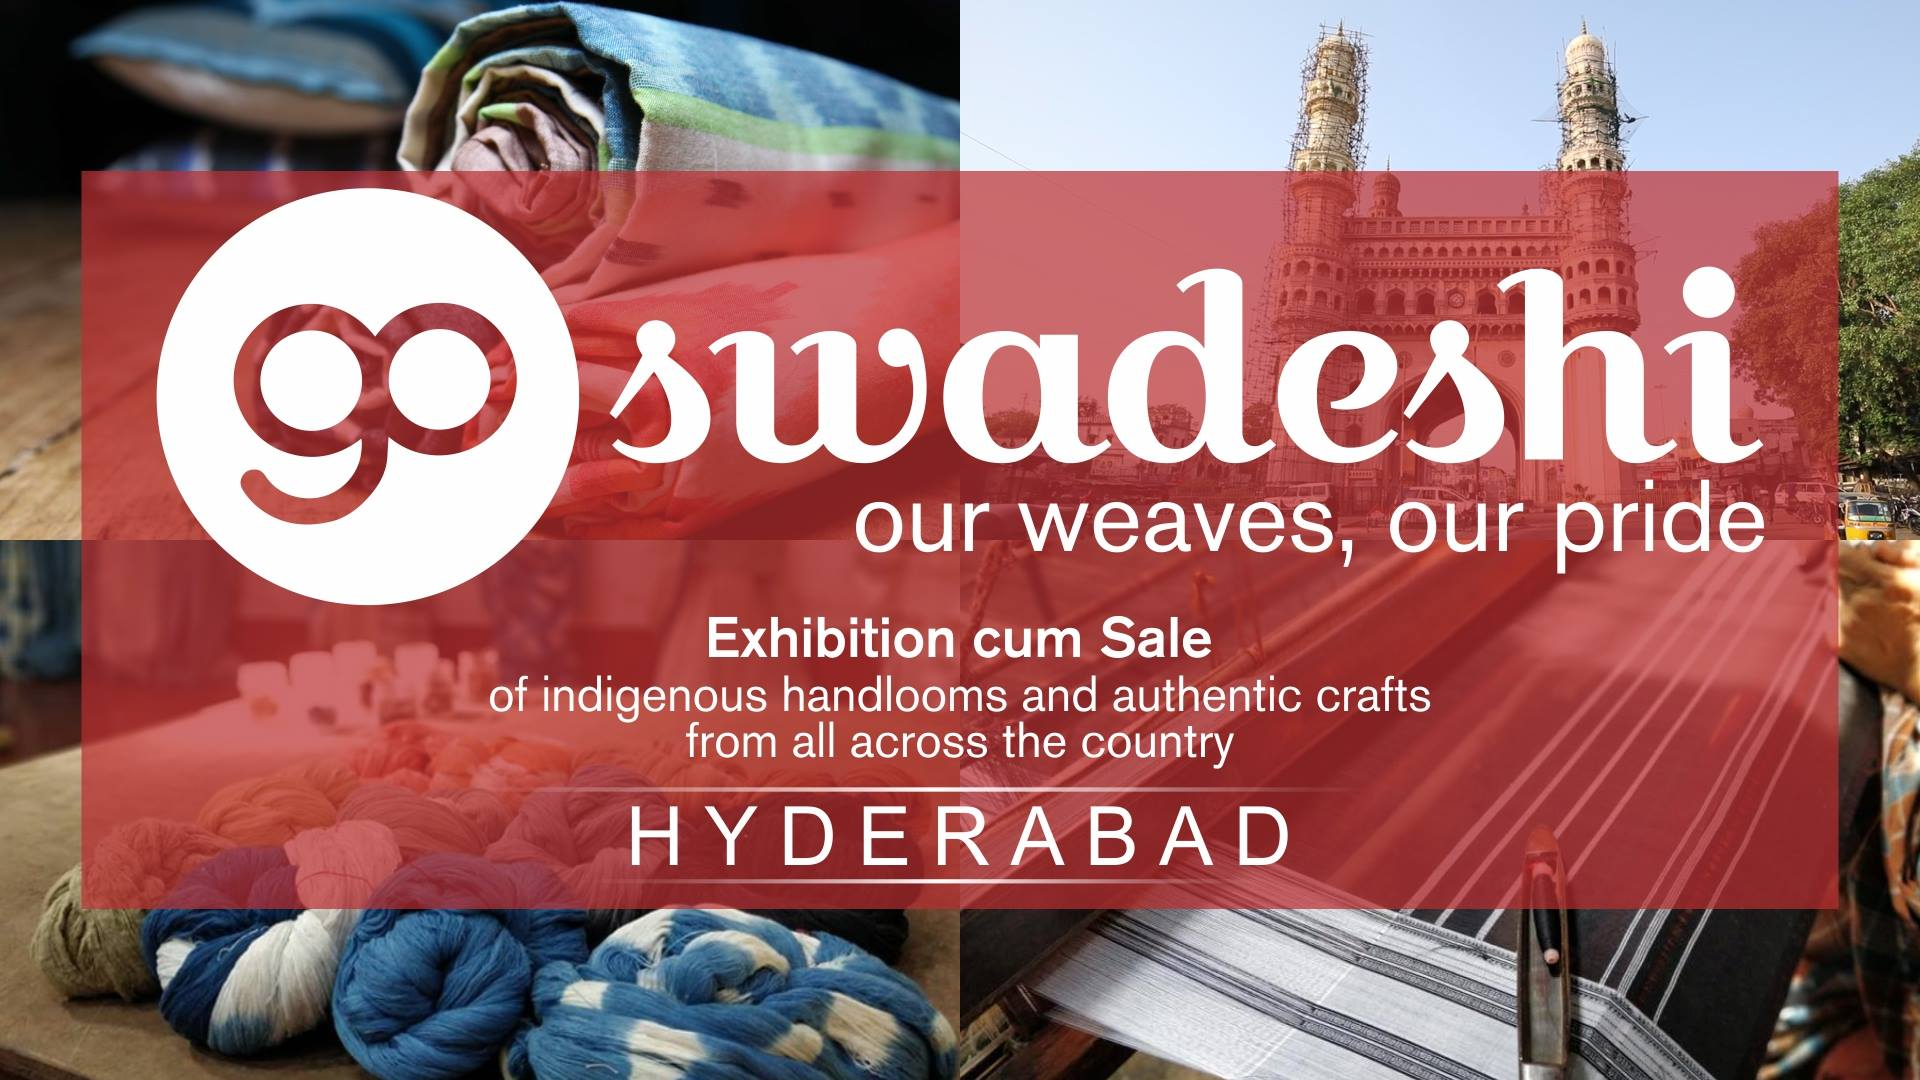 Go Swadeshi, Hyderabad